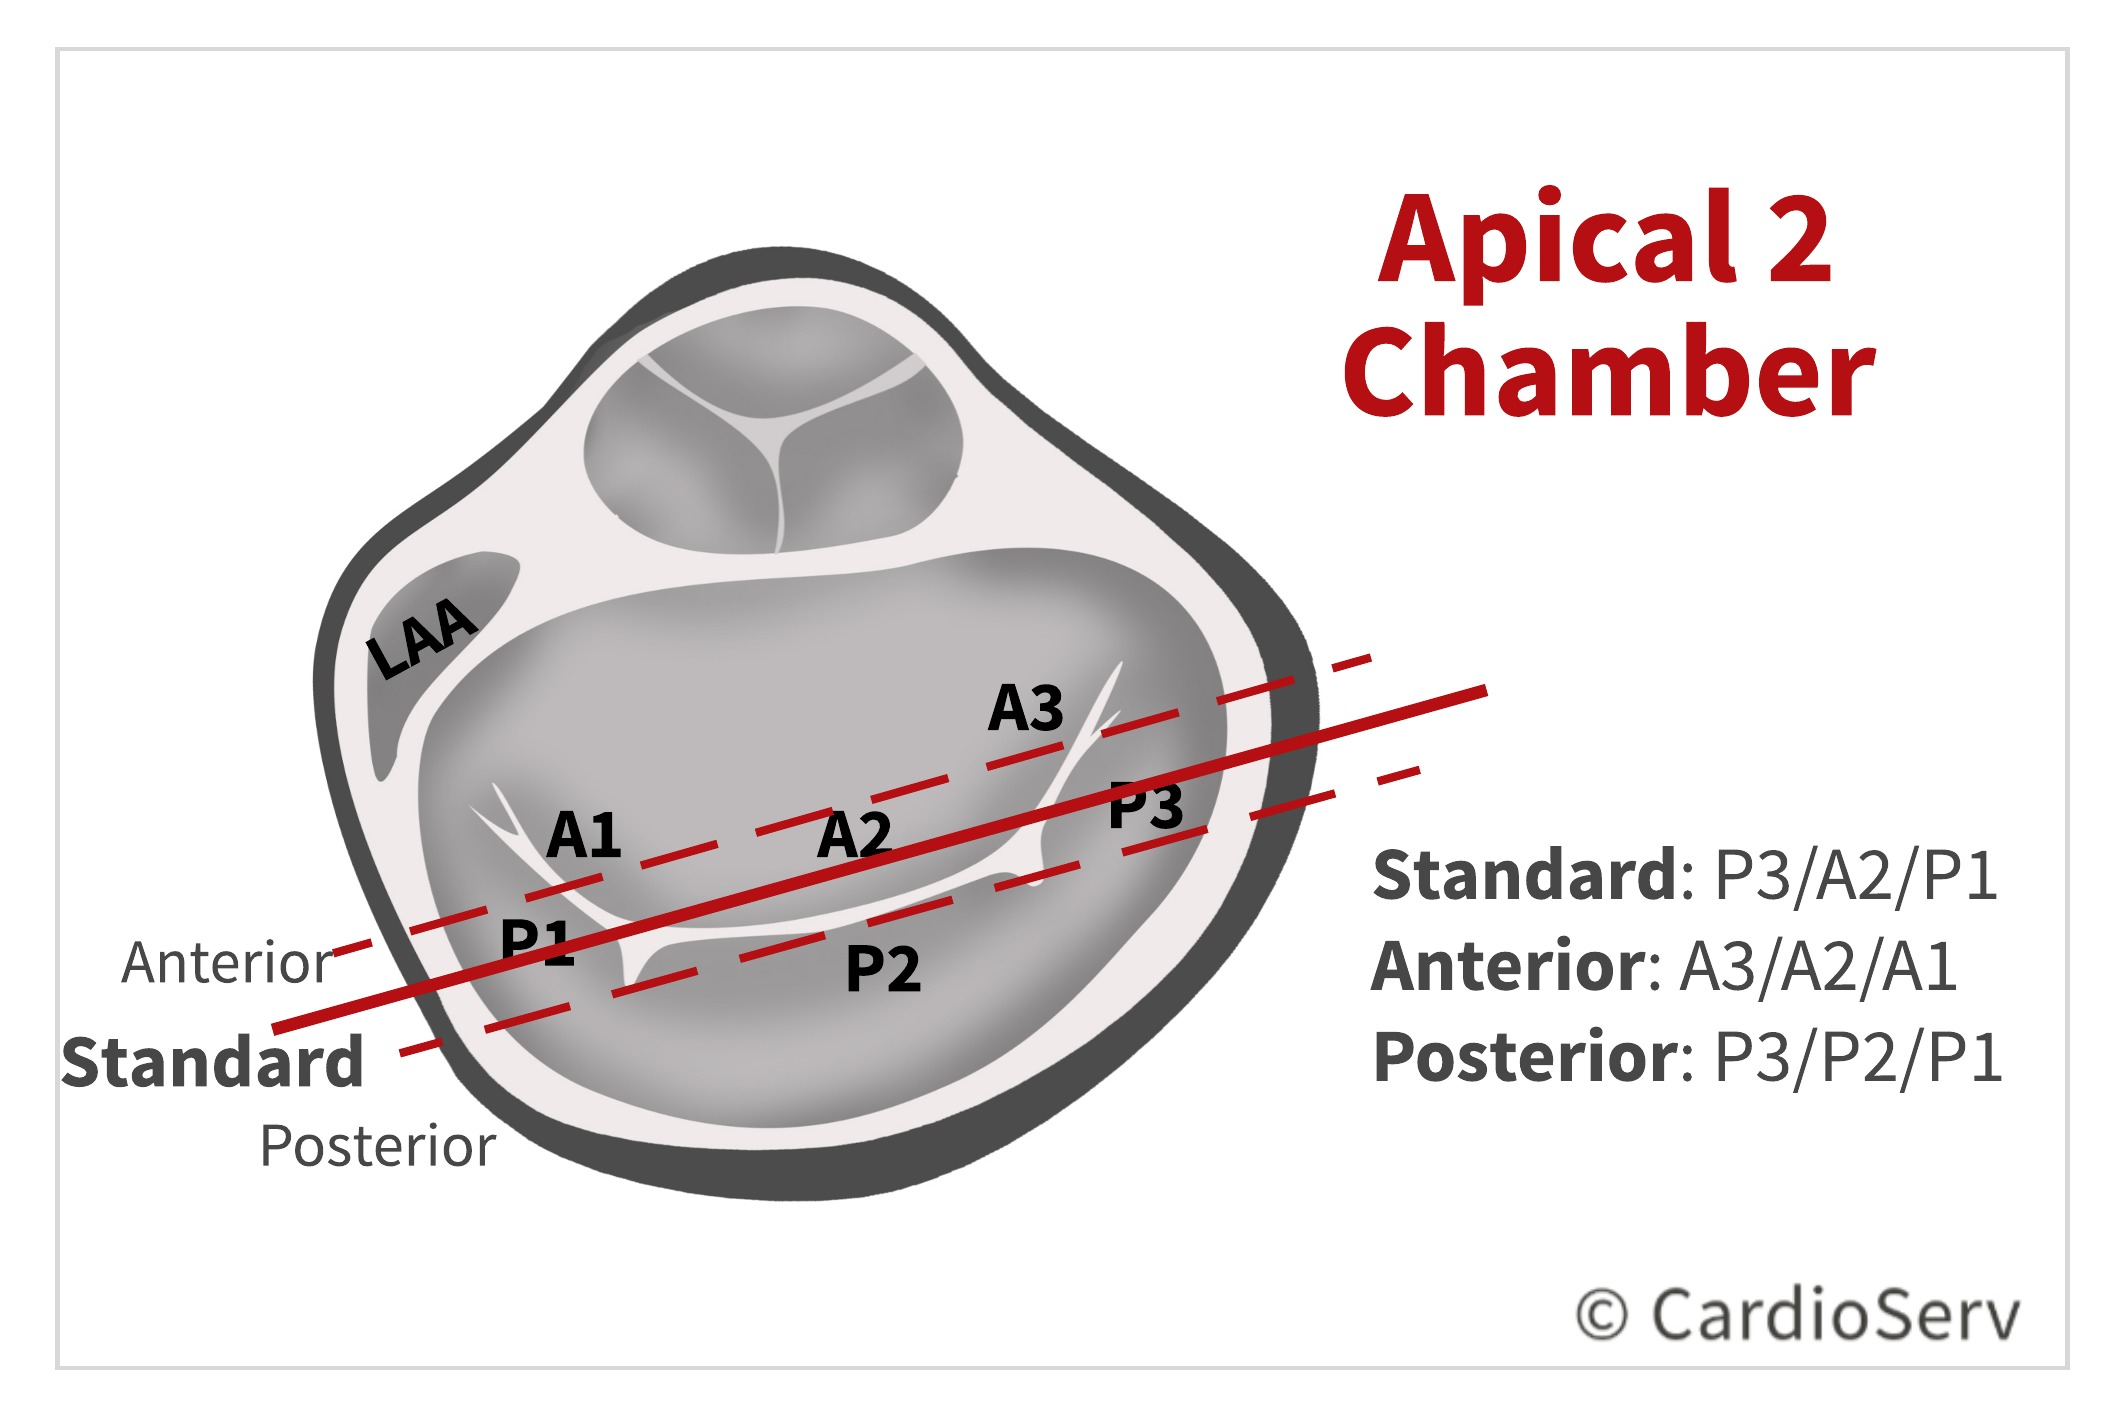 Apical 2 Chamber AP2 Mitral Valve Scallops Echo